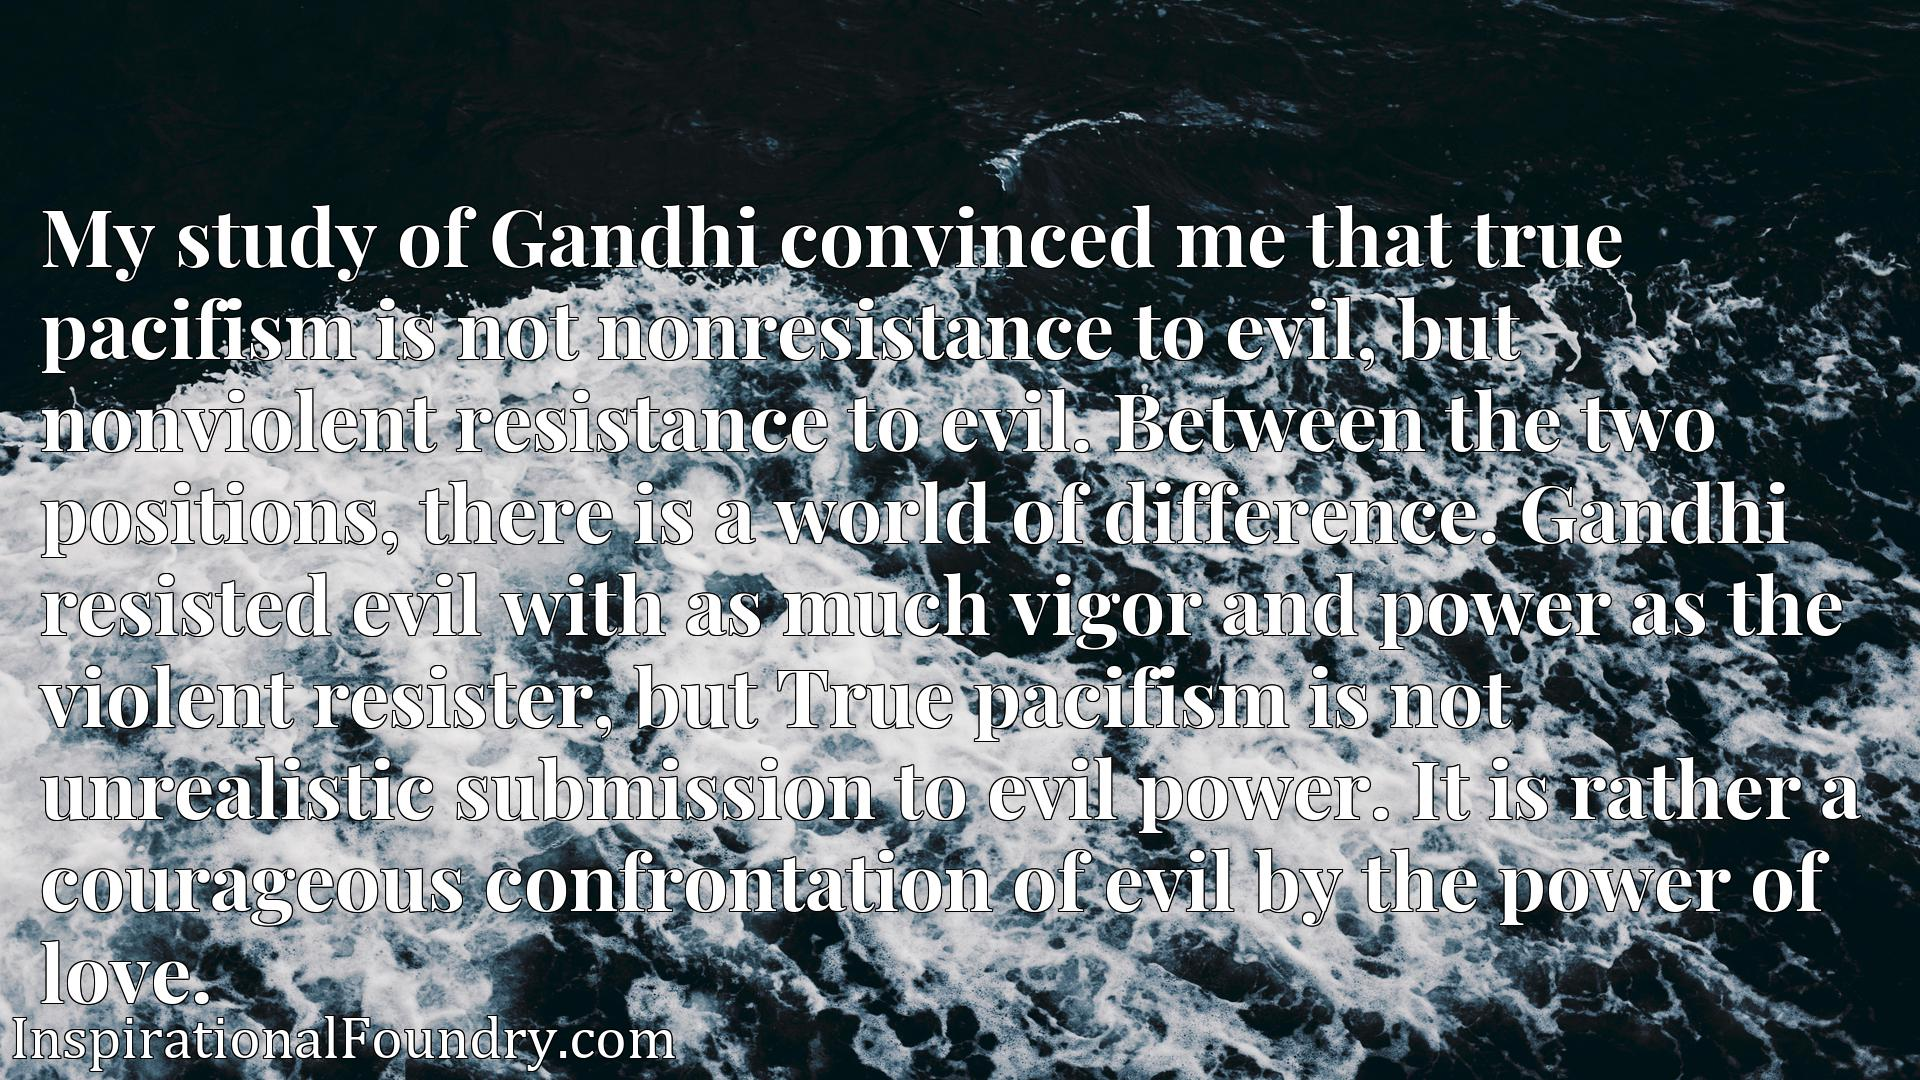 My study of Gandhi convinced me that true pacifism is not nonresistance to evil, but nonviolent resistance to evil. Between the two positions, there is a world of difference. Gandhi resisted evil with as much vigor and power as the violent resister, but True pacifism is not unrealistic submission to evil power. It is rather a courageous confrontation of evil by the power of love.